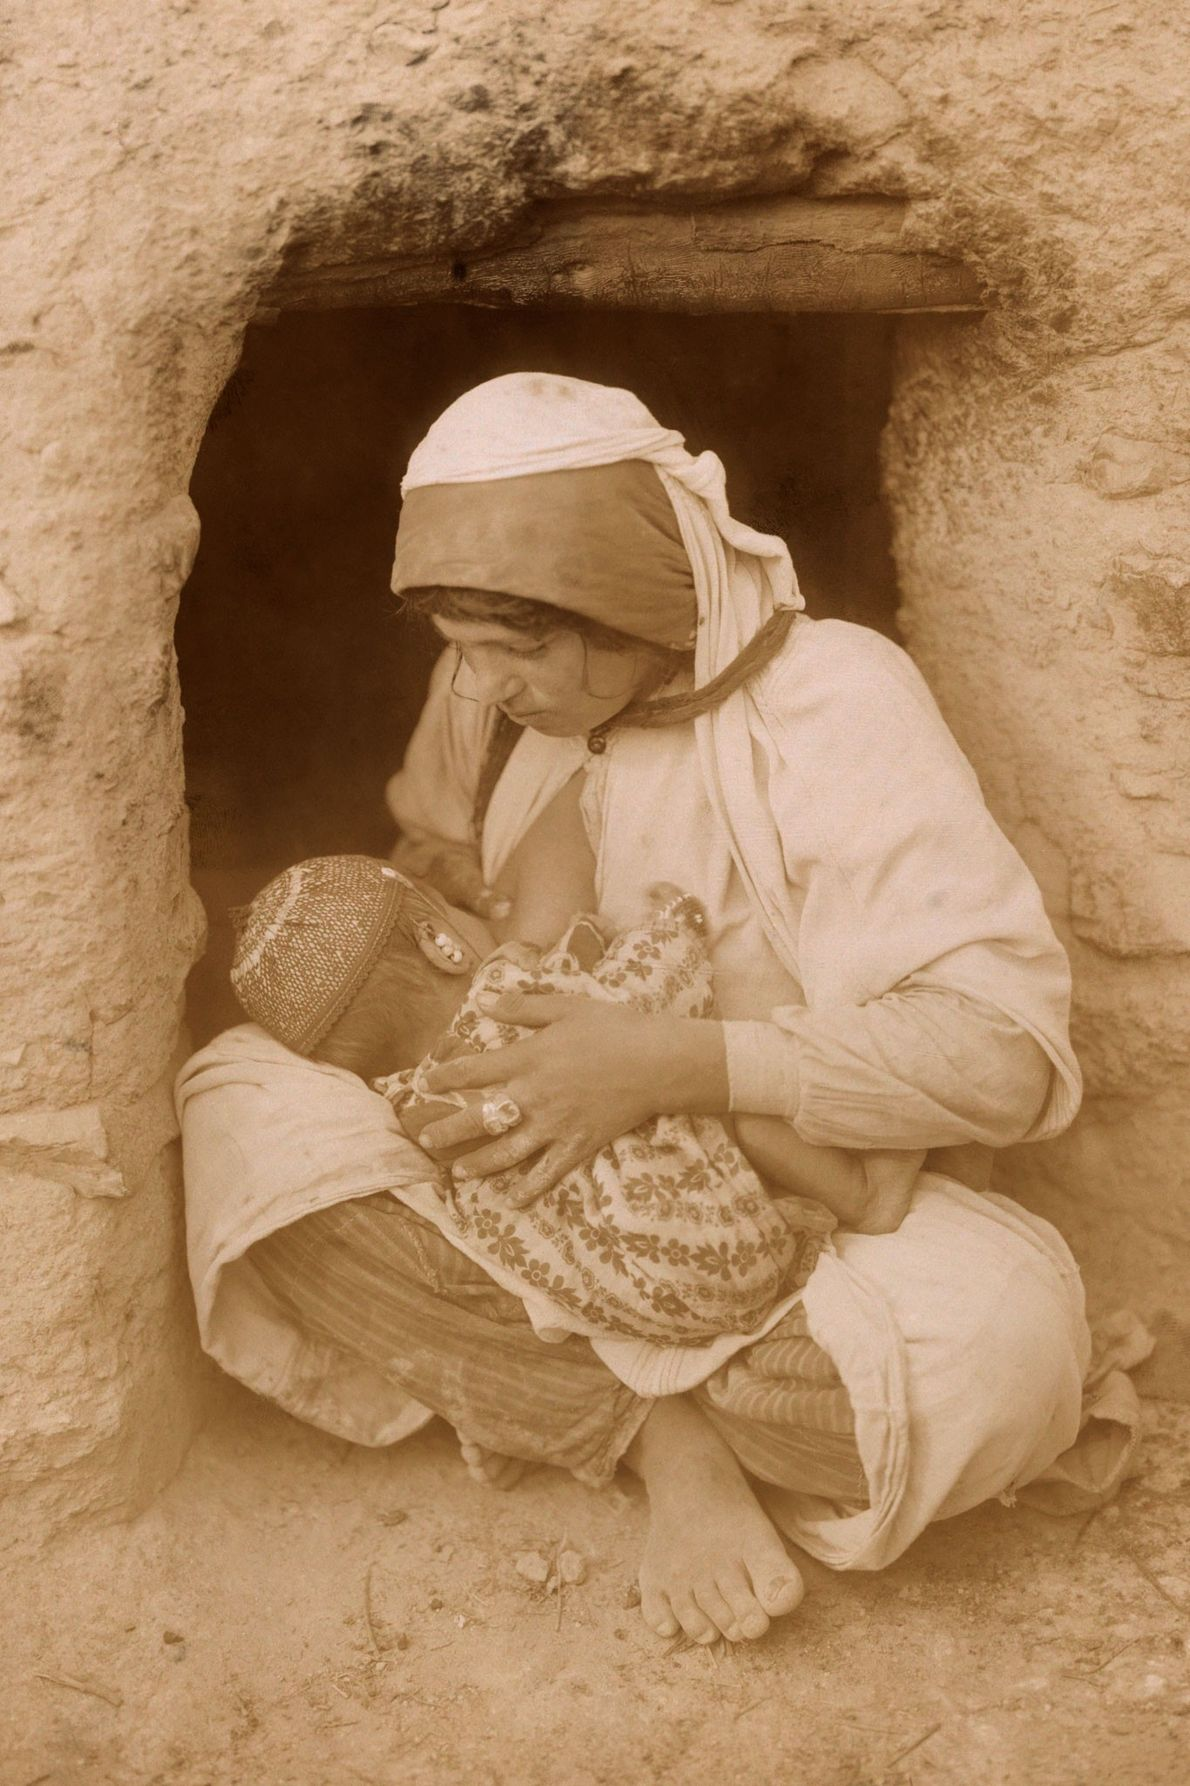 A mother in the Middle East breastfeeds her baby as she sits outside her home.